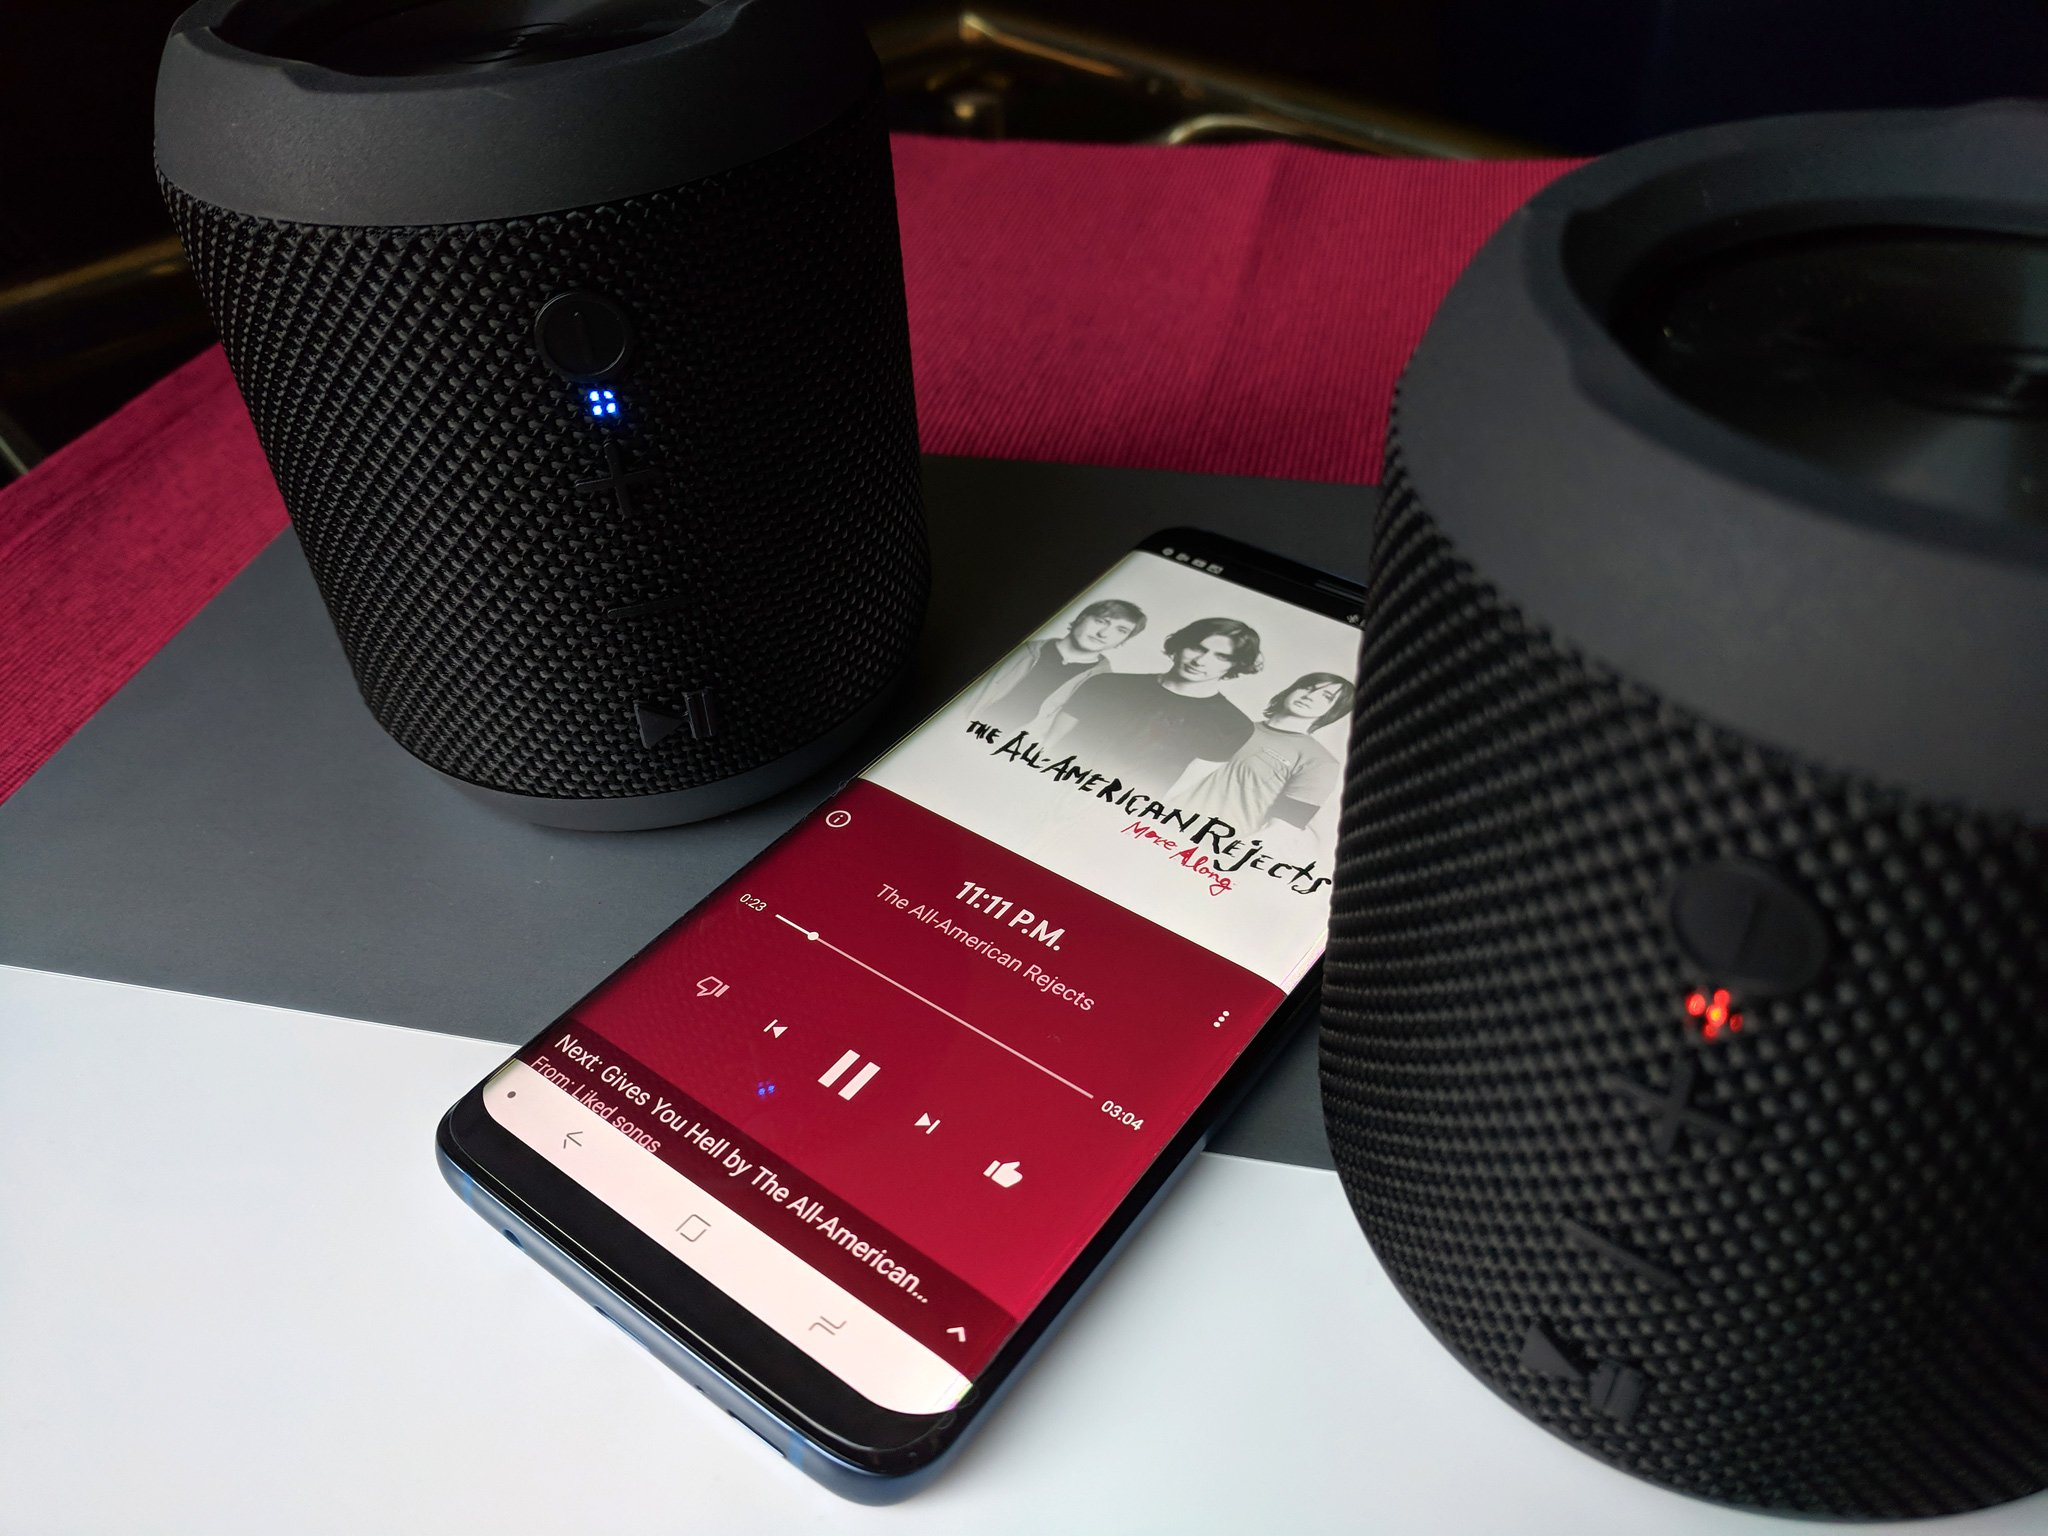 Led Touch Portable Mini Wireless Bluetooth Speakers Hands Free Sound Music To Prevent And Cure Diseases Portable Audio & Headphones Audio Docks & Mini Speakers